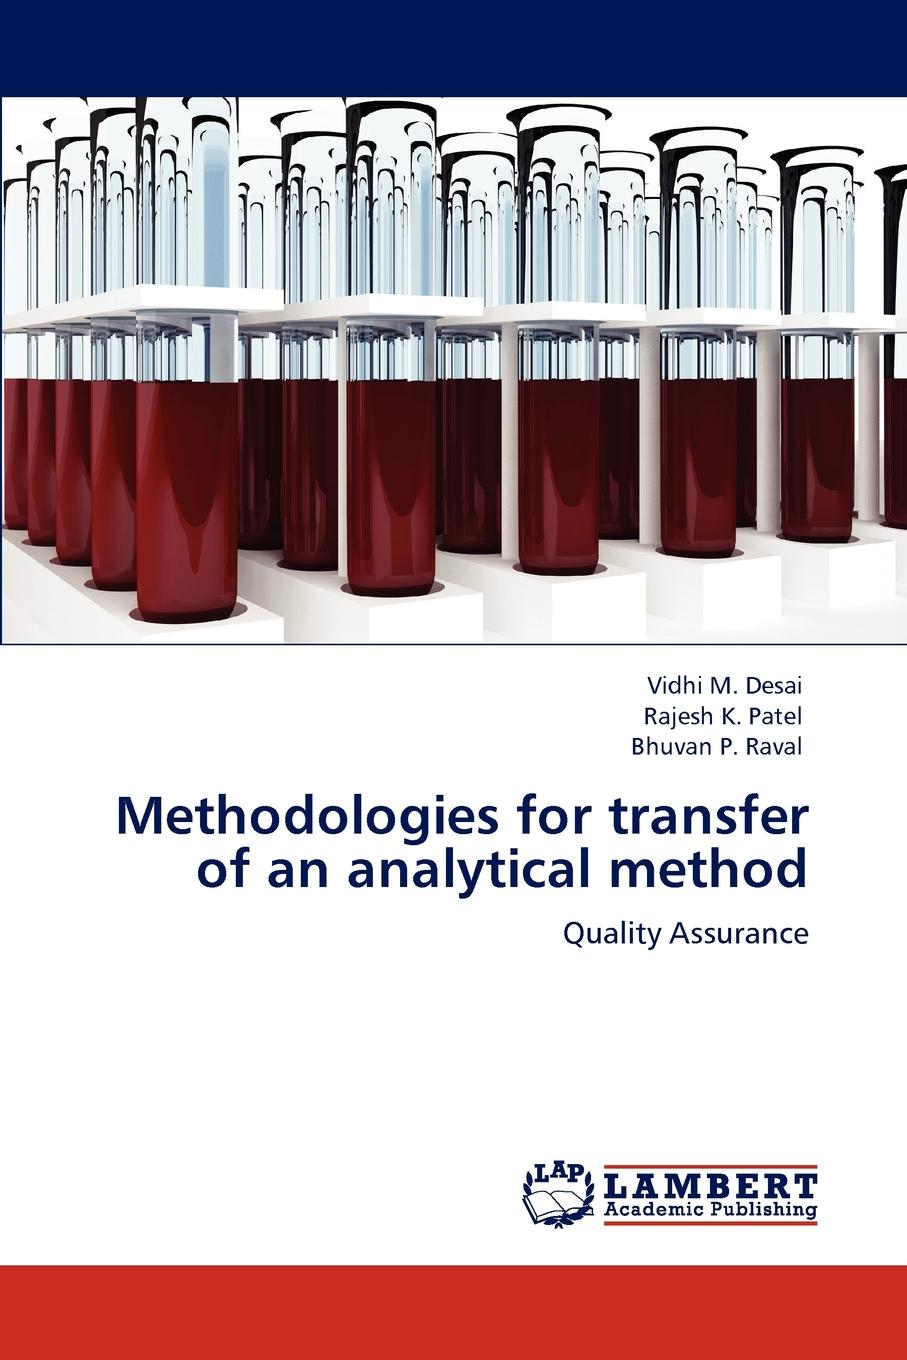 где купить Vidhi M. Desai, Rajesh K. Patel, Bhuvan P. Raval Methodologies for transfer of an analytical method недорого с доставкой